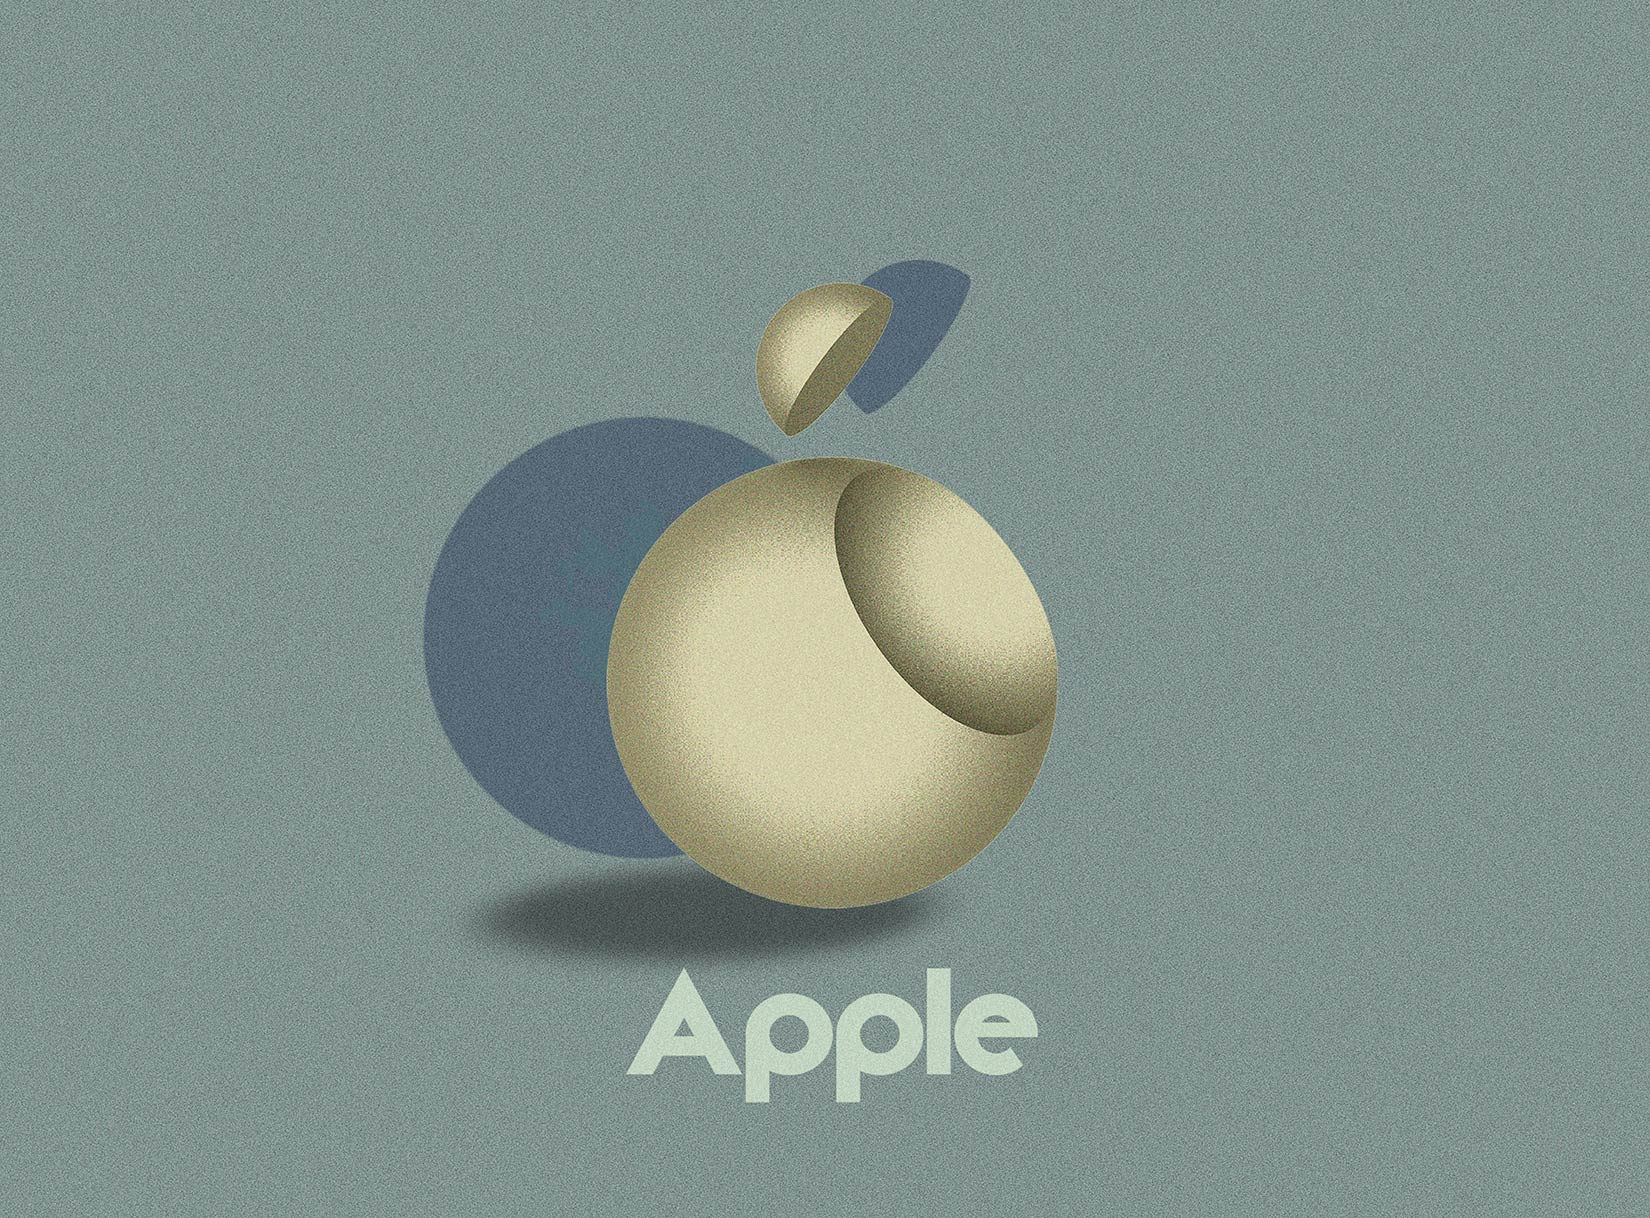 Bauhaus Apple logo